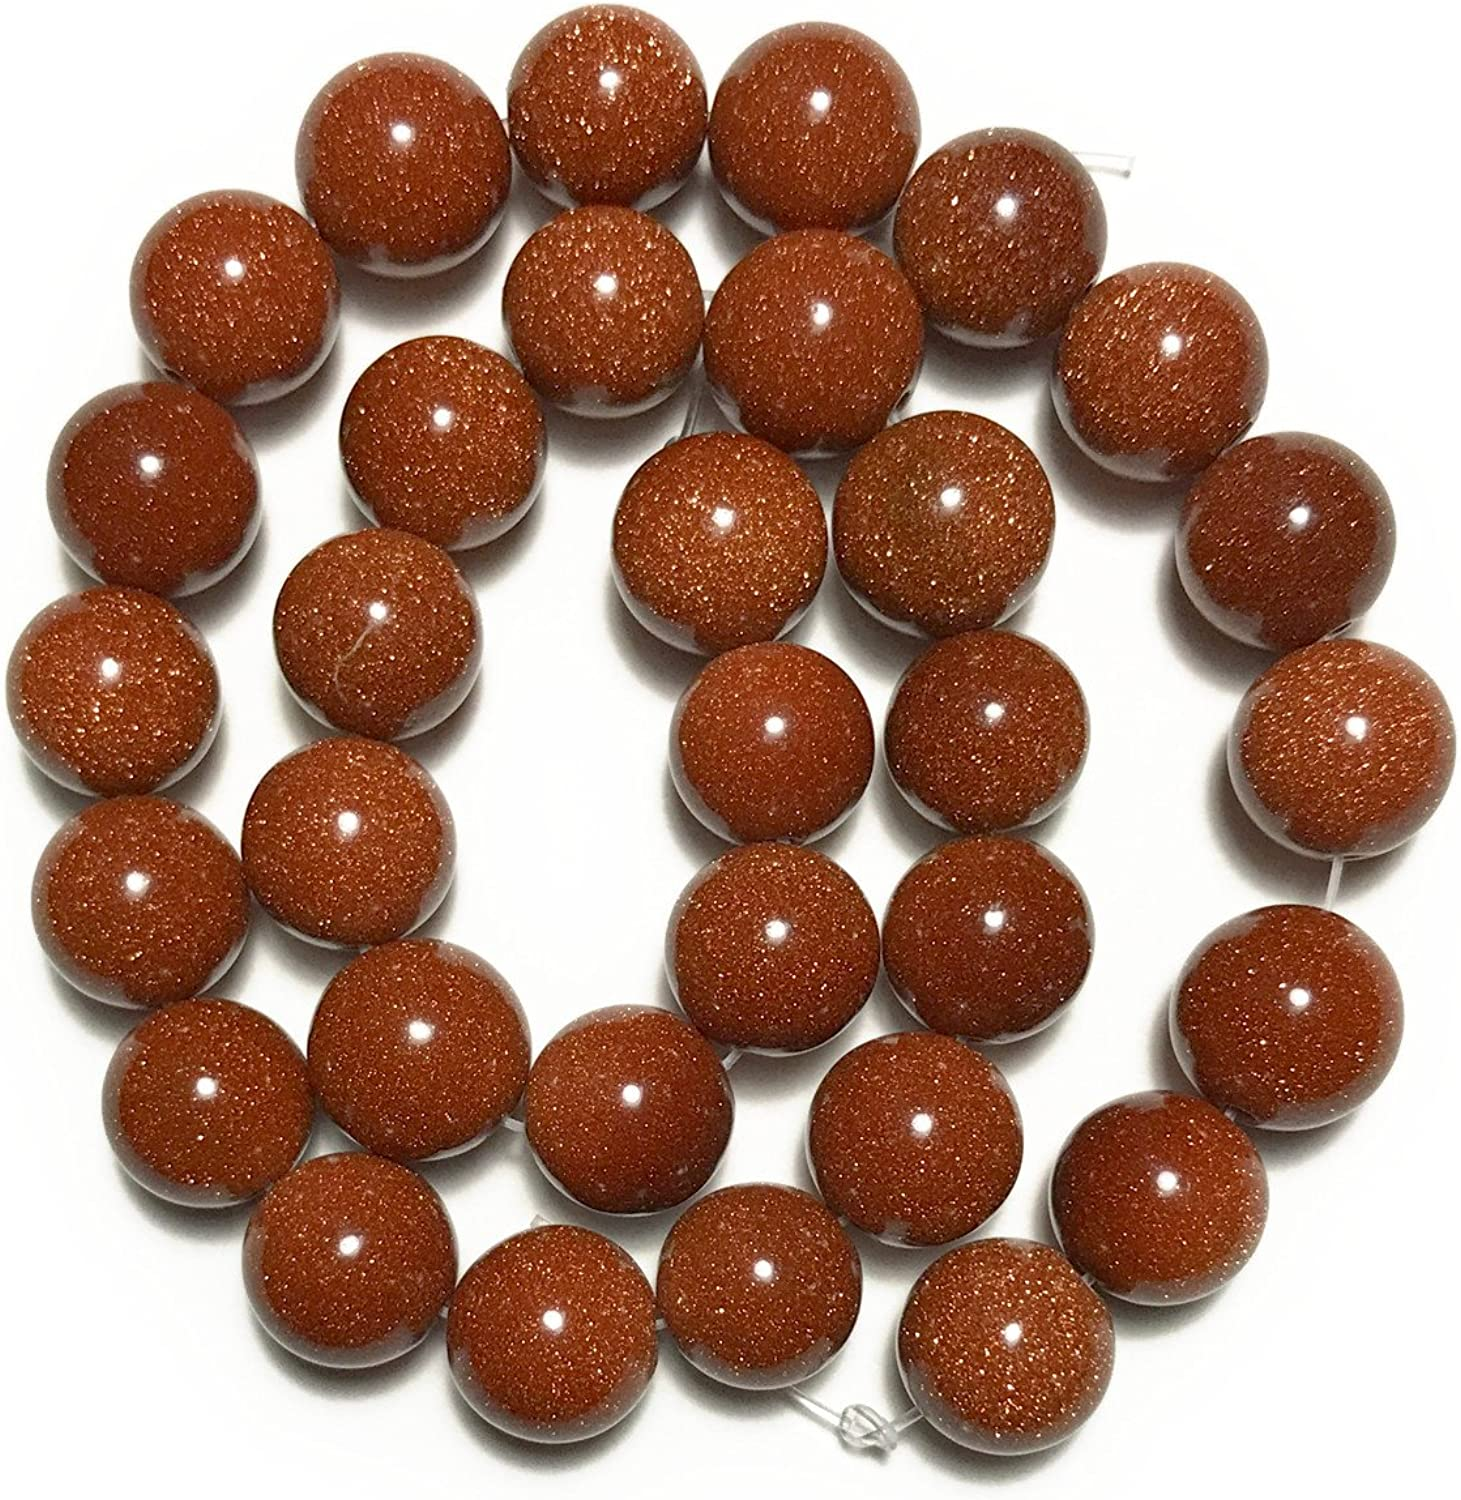 [Stone Power Stone beads] goldstone (golden sands) MaruTama beads 12mm (1 series about 40cm)